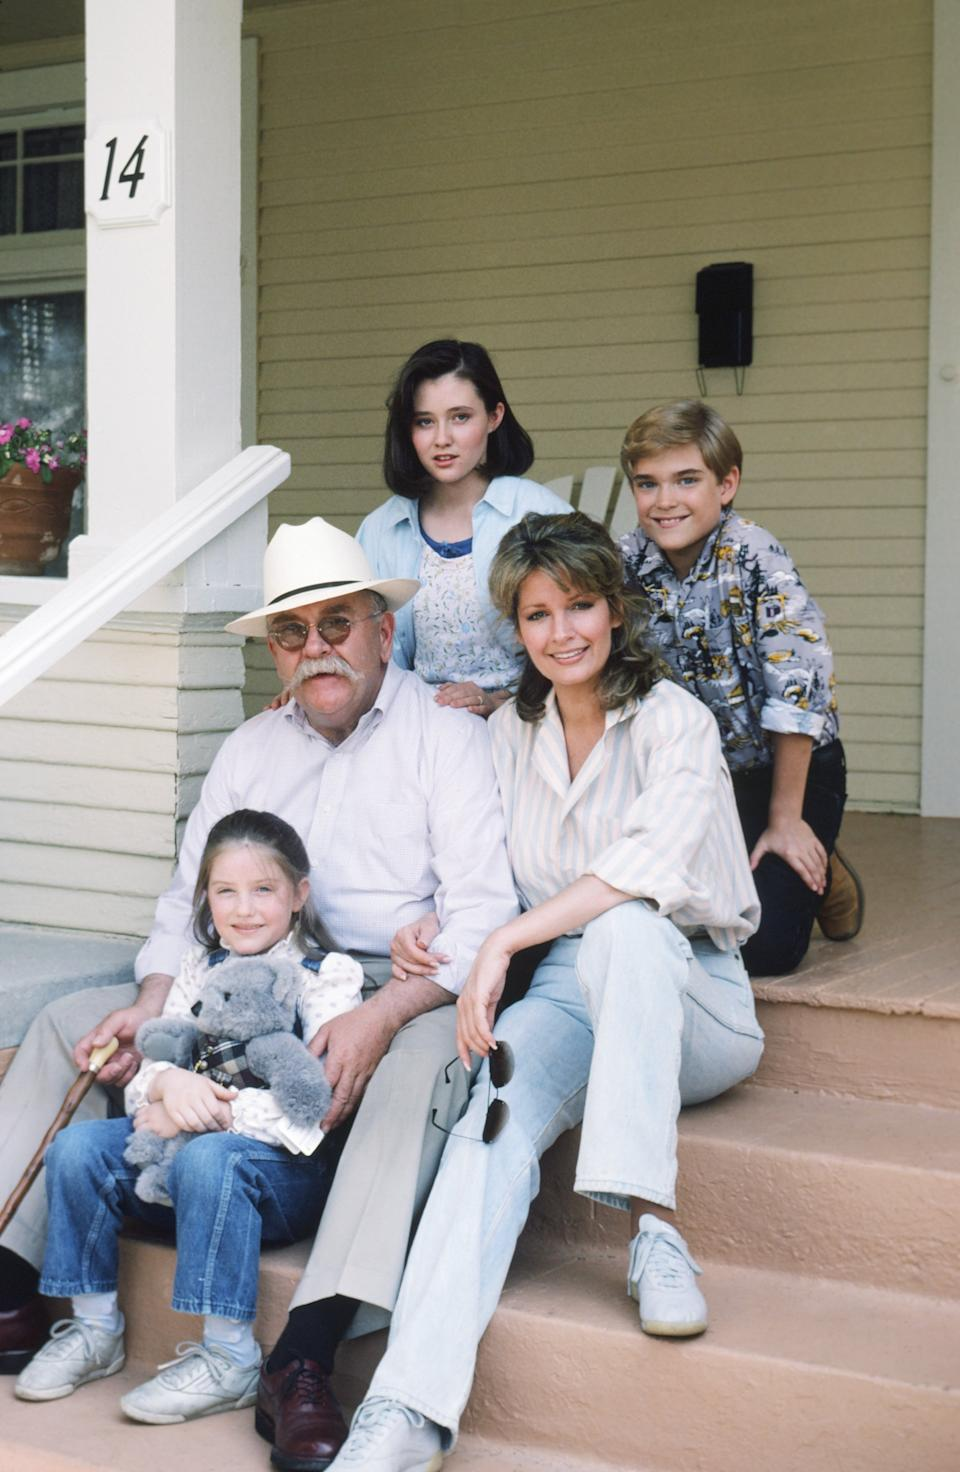 OUR HOUSE -- Season 1 -- Pictured: (clockwise, top left) Shannen Doherty as Kris Witherspoon, Chad Allen as David Witherspoon, Deidre Hall as Jessica 'Jessie' Witherspoon, Keri Houlihan as Molly Witherspoon, Wilford Brimley as Gus Witherspoon -- Photo by: Frank Carroll/NBCU Photo Bank